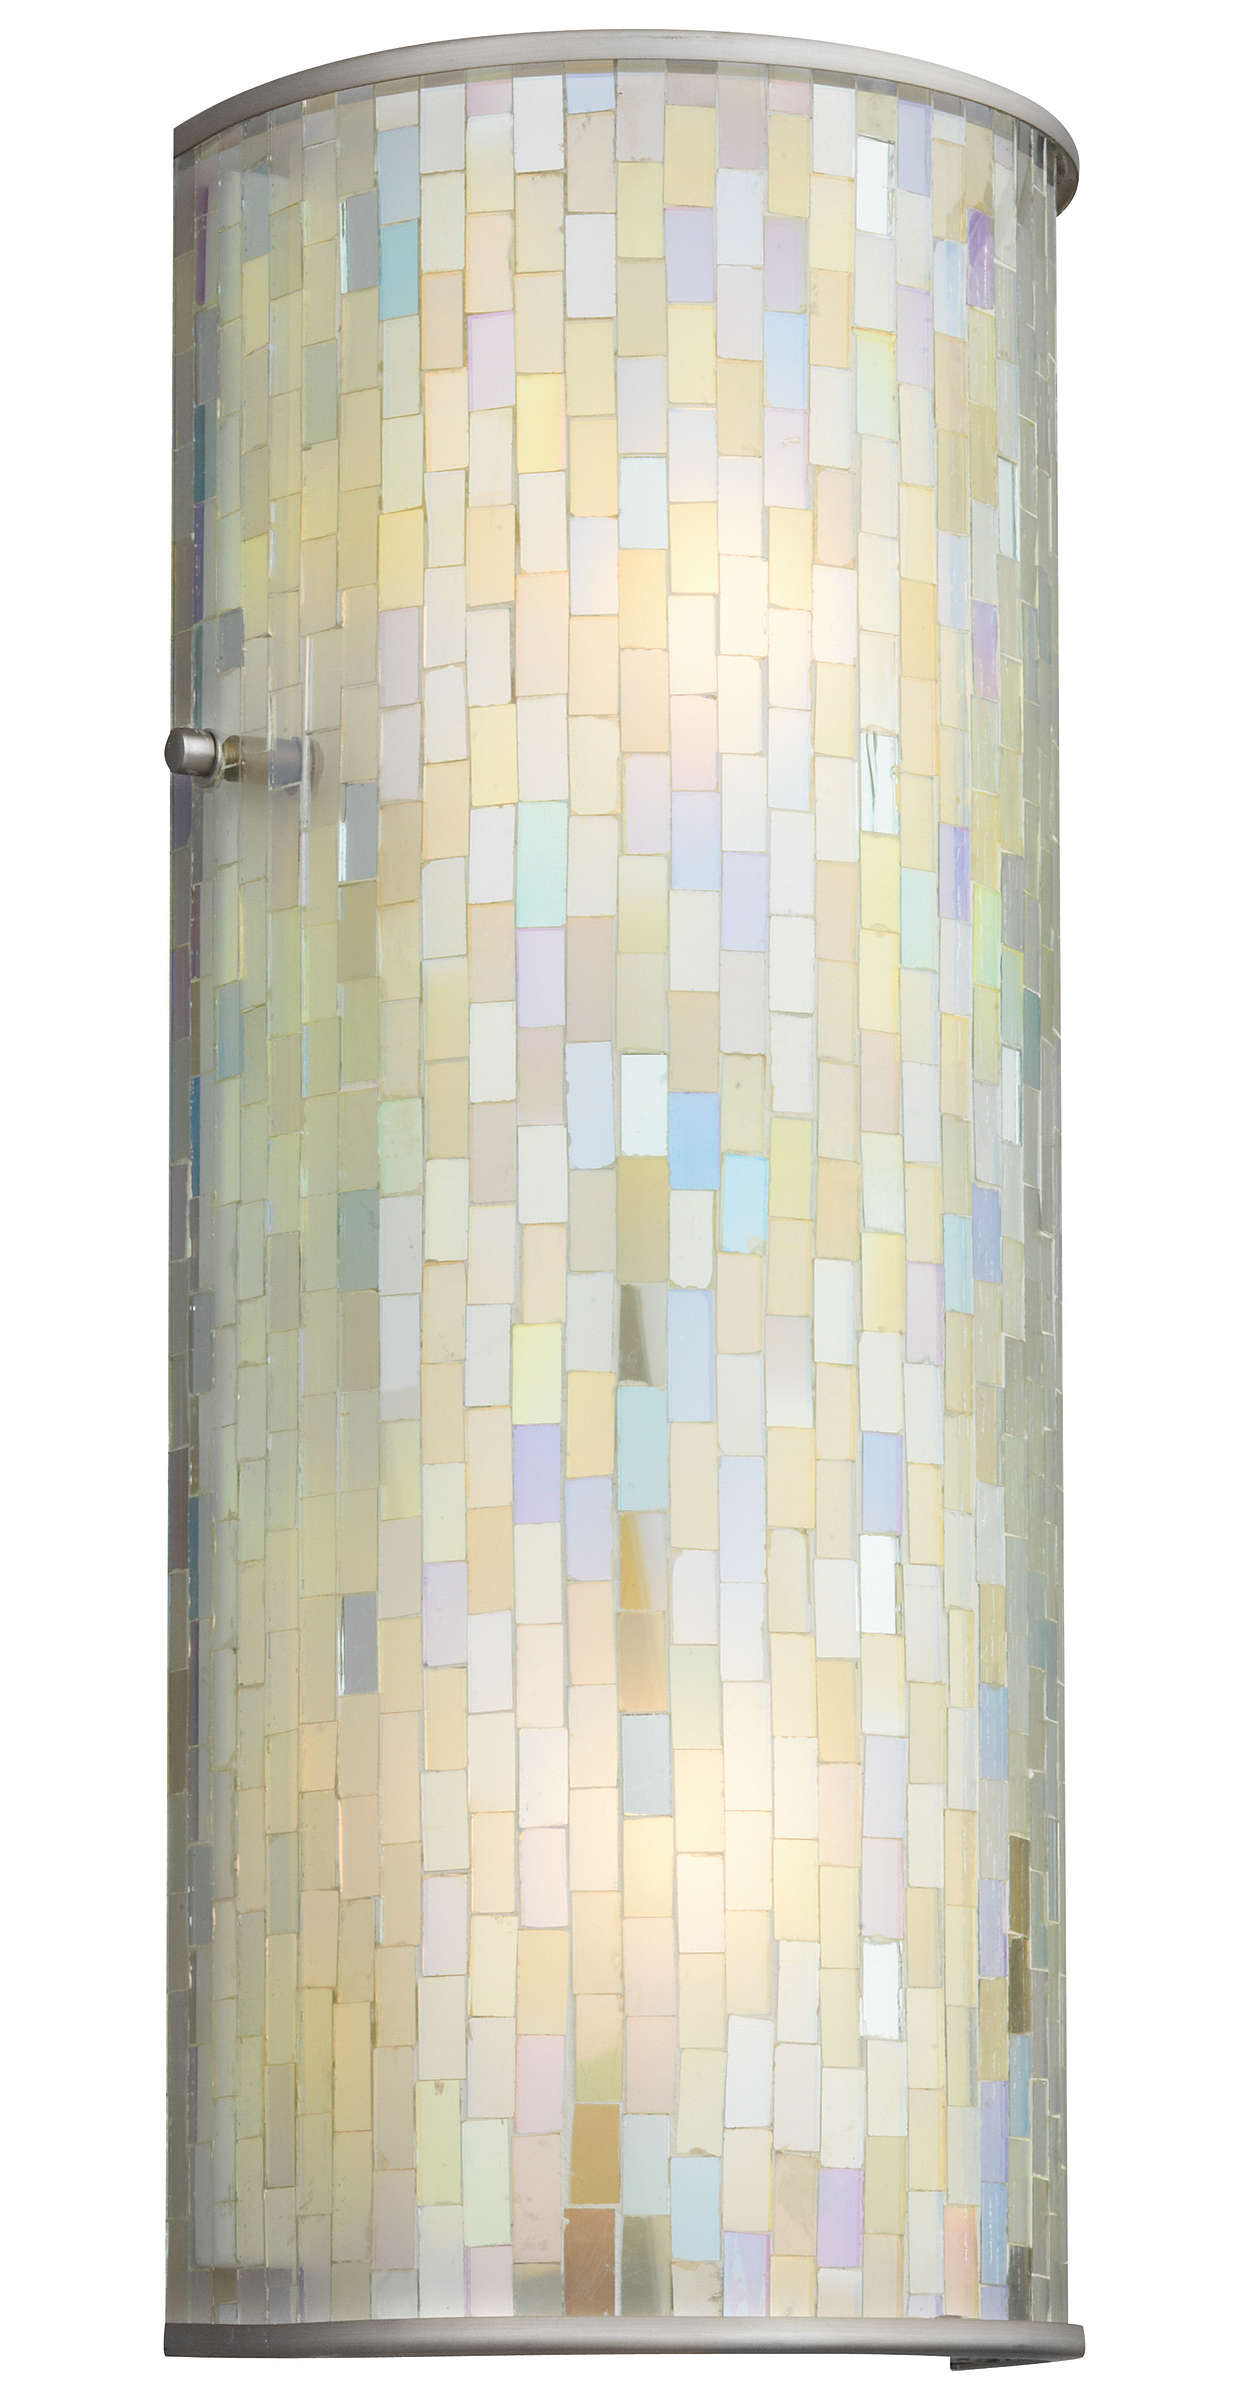 Mosaico 2-light Bath in Brushed Nickel finish